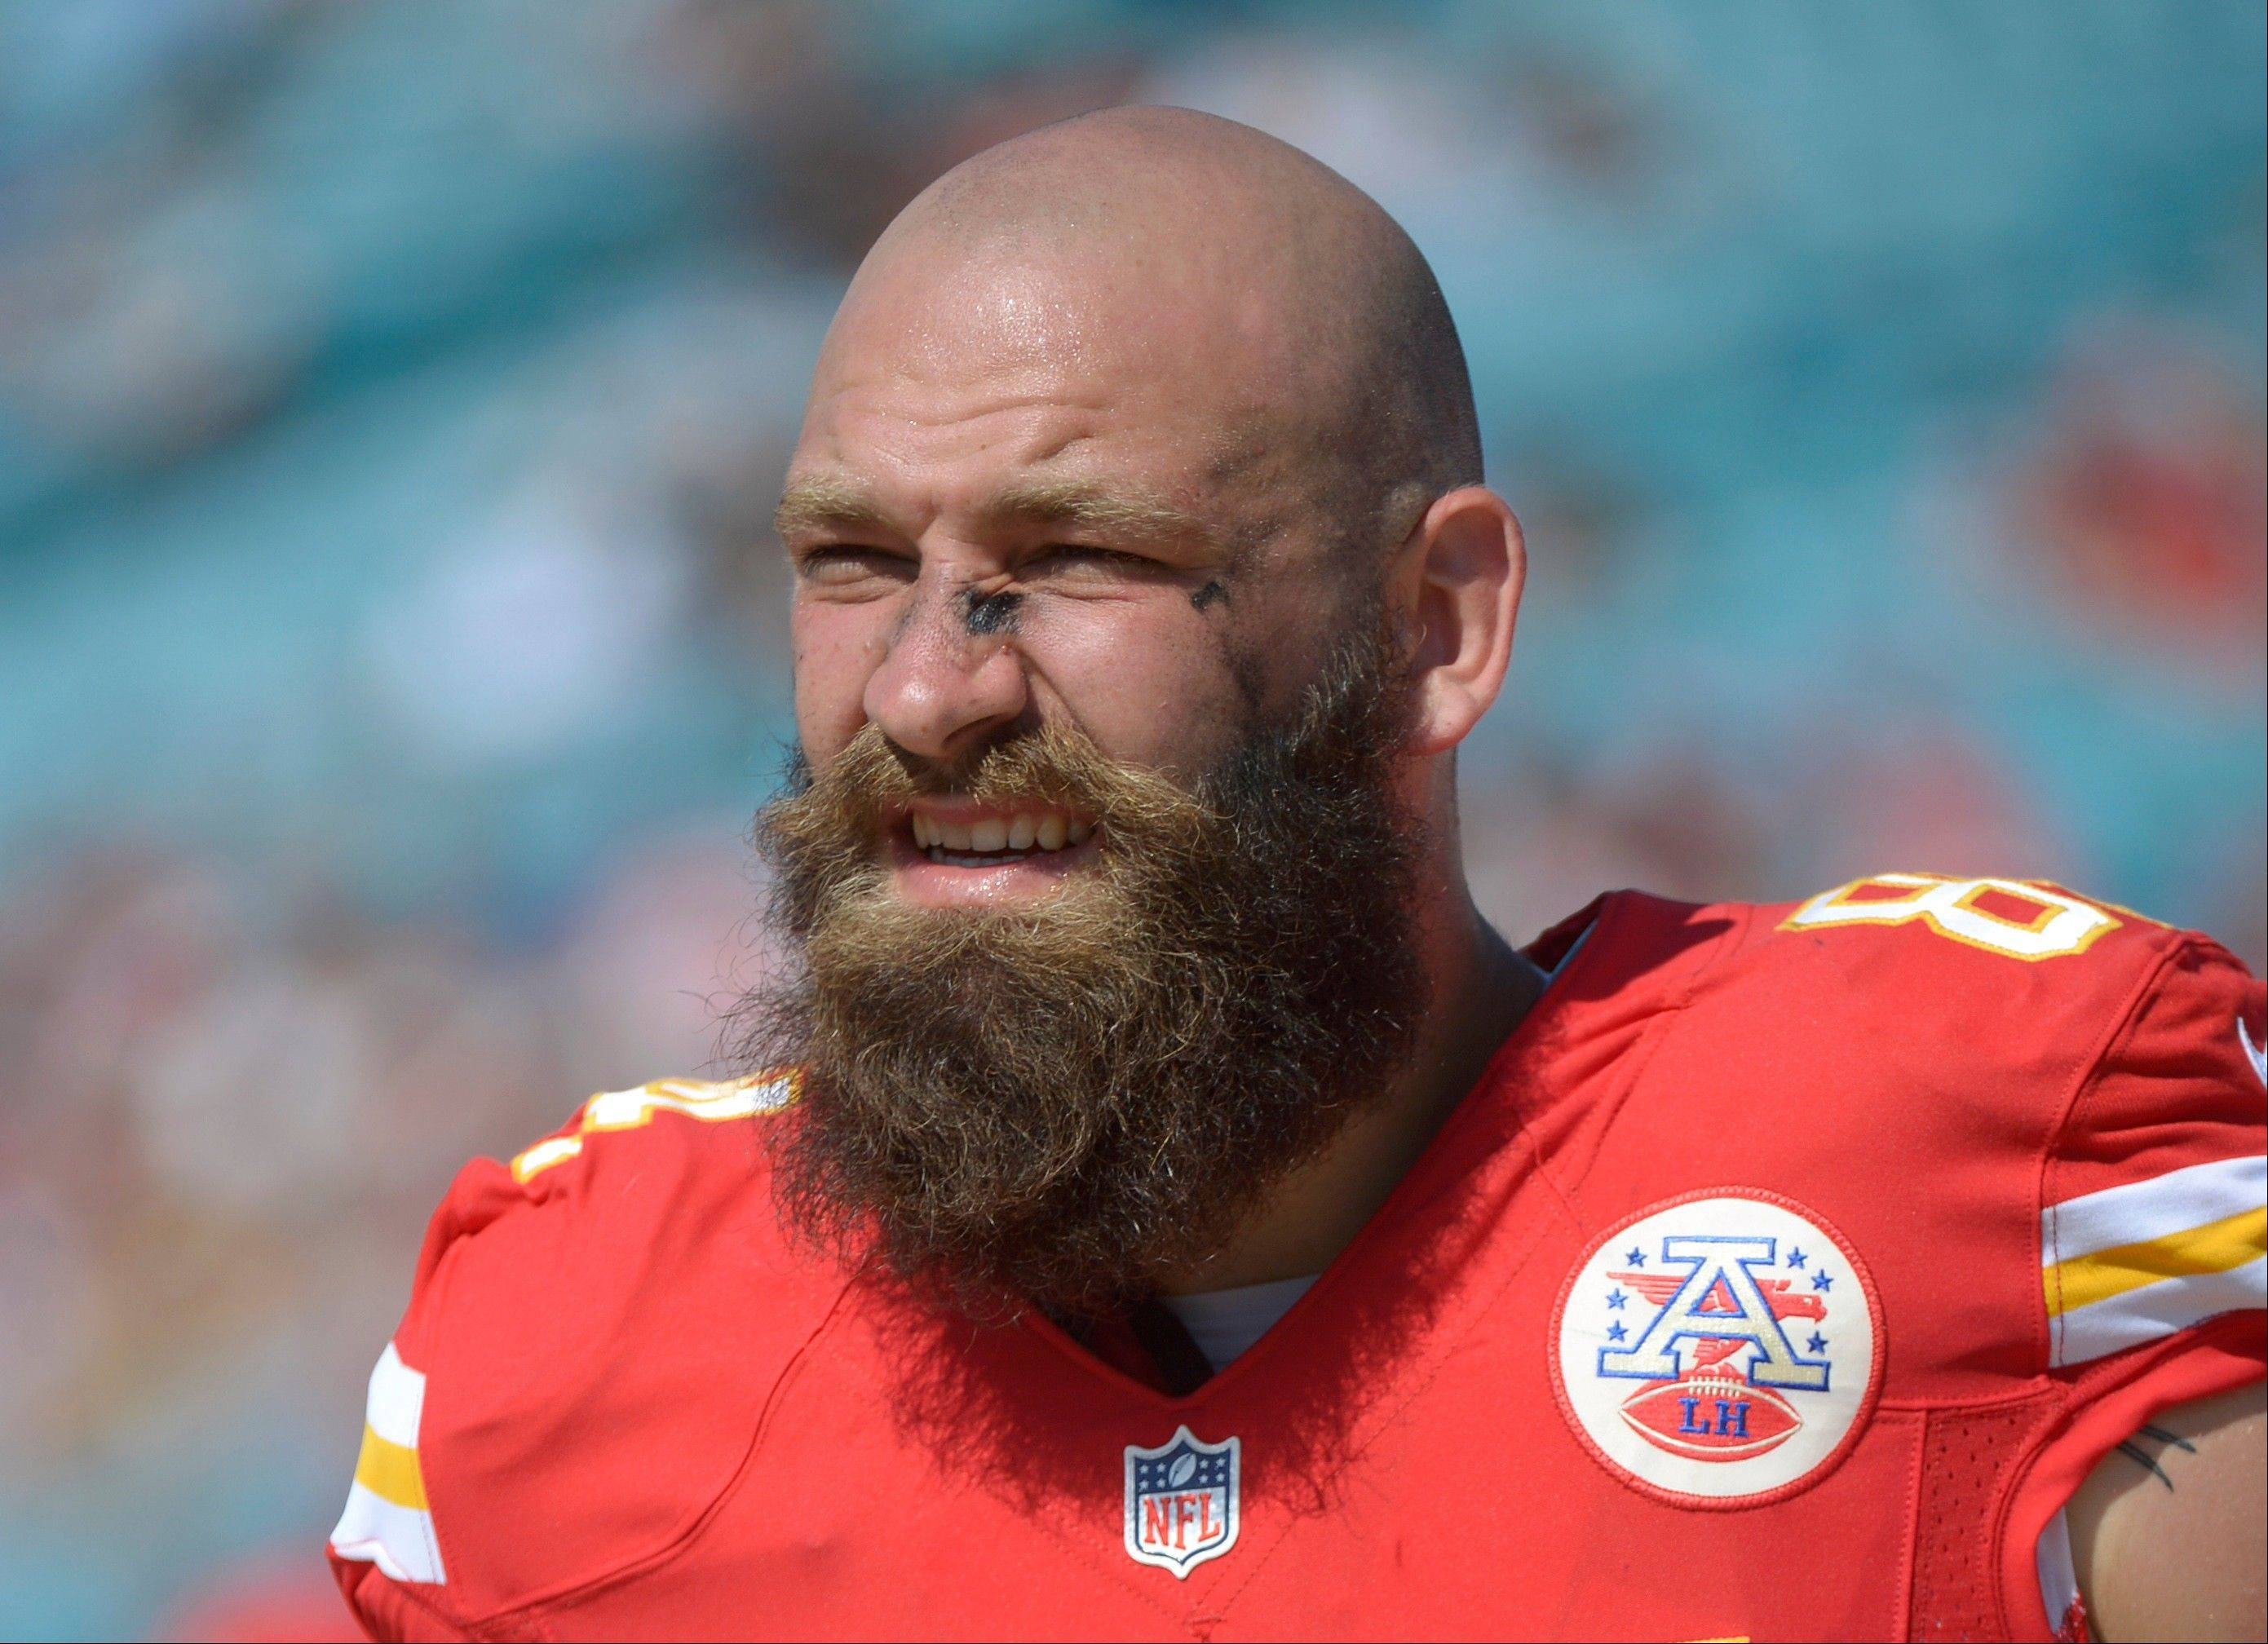 Injuries to two tight ends led the Kansas City Chiefs to pick up Sean McGrath of Mundelein. McGrath is quickly becoming a cult icon for his gnarly whiskers, and a hero to Chiefs fans for the way he�s filled in for banged-up starters Anthony Fasano and Travis Kelce.